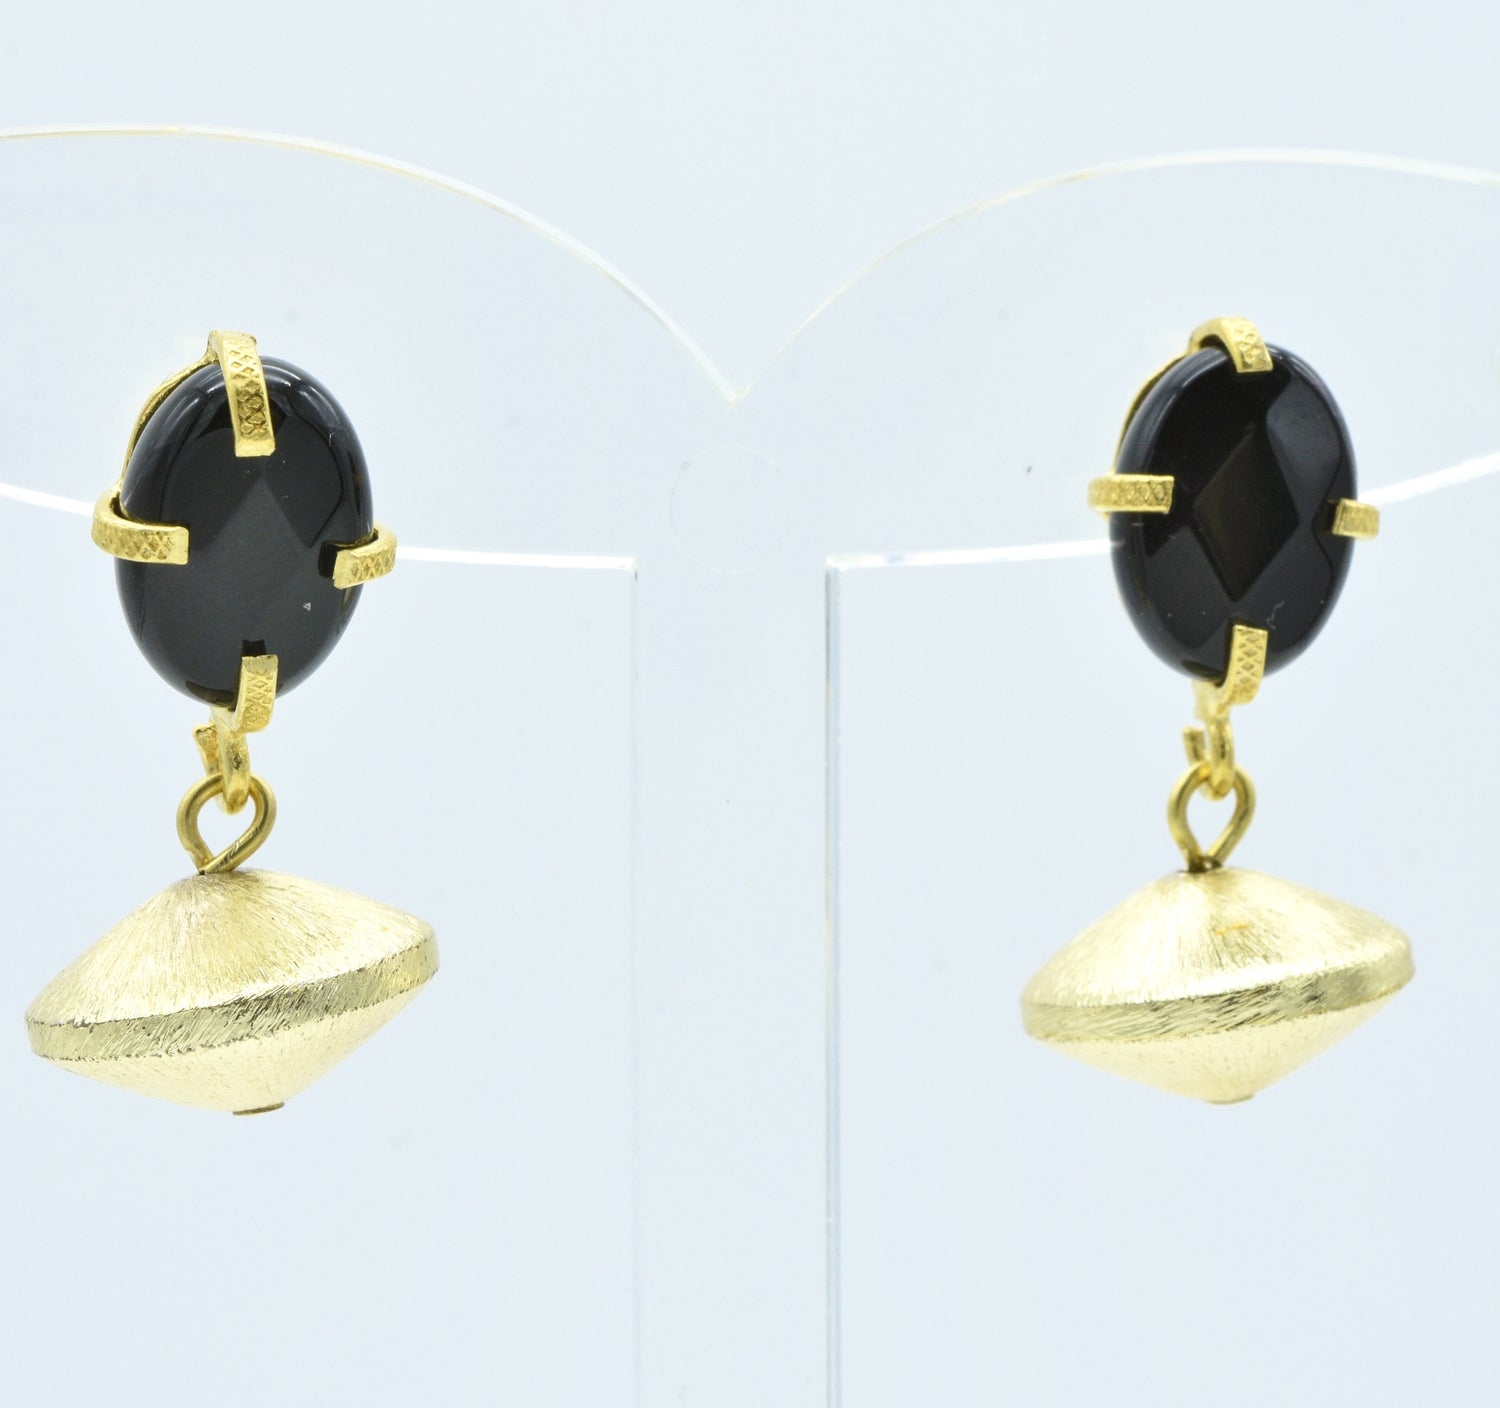 Aylas Onyx earrings - 21ct Gold plated semi precious gemstone - Handmade in Ottoman Style by Artisan